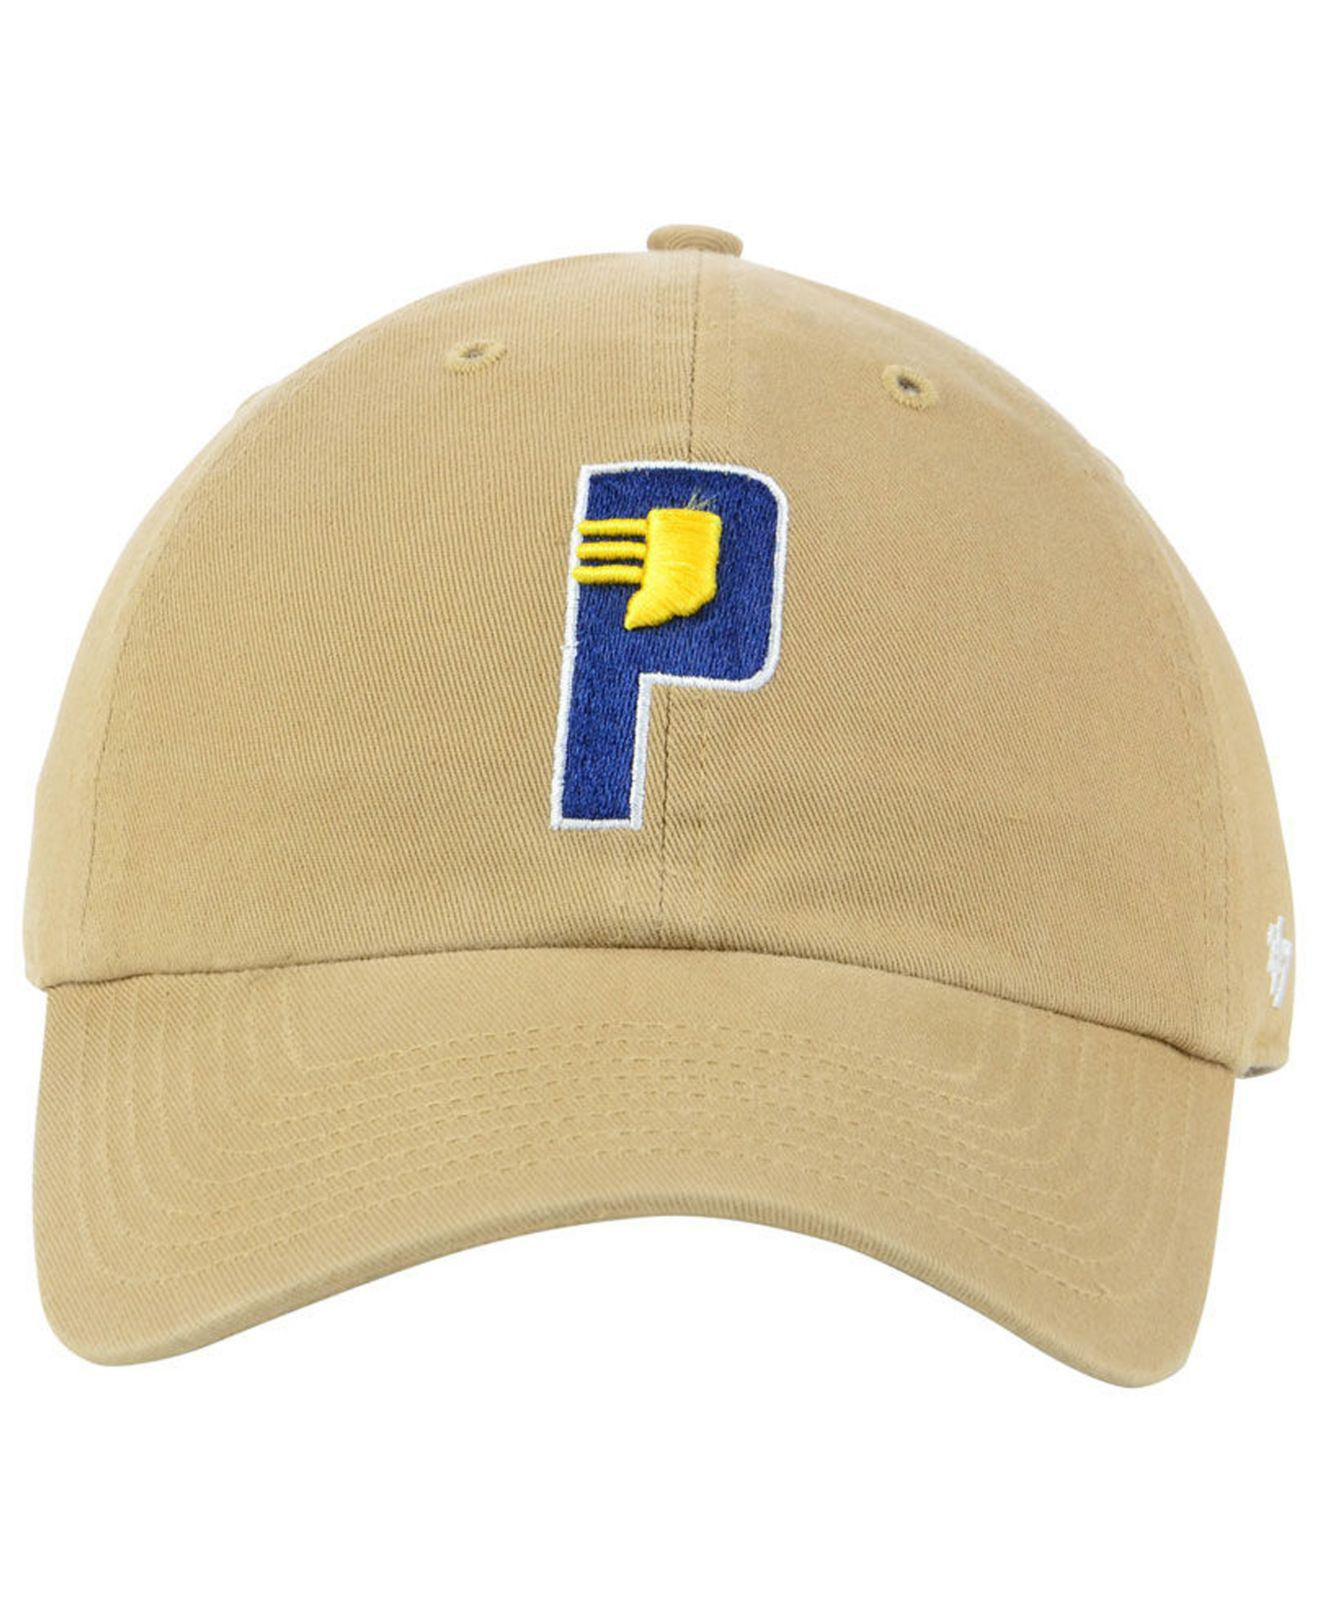 16378aa30bdb2 ... canada lyst 47 brand indiana pacers mash up clean up cap for men save  25.925925925925924 e8970